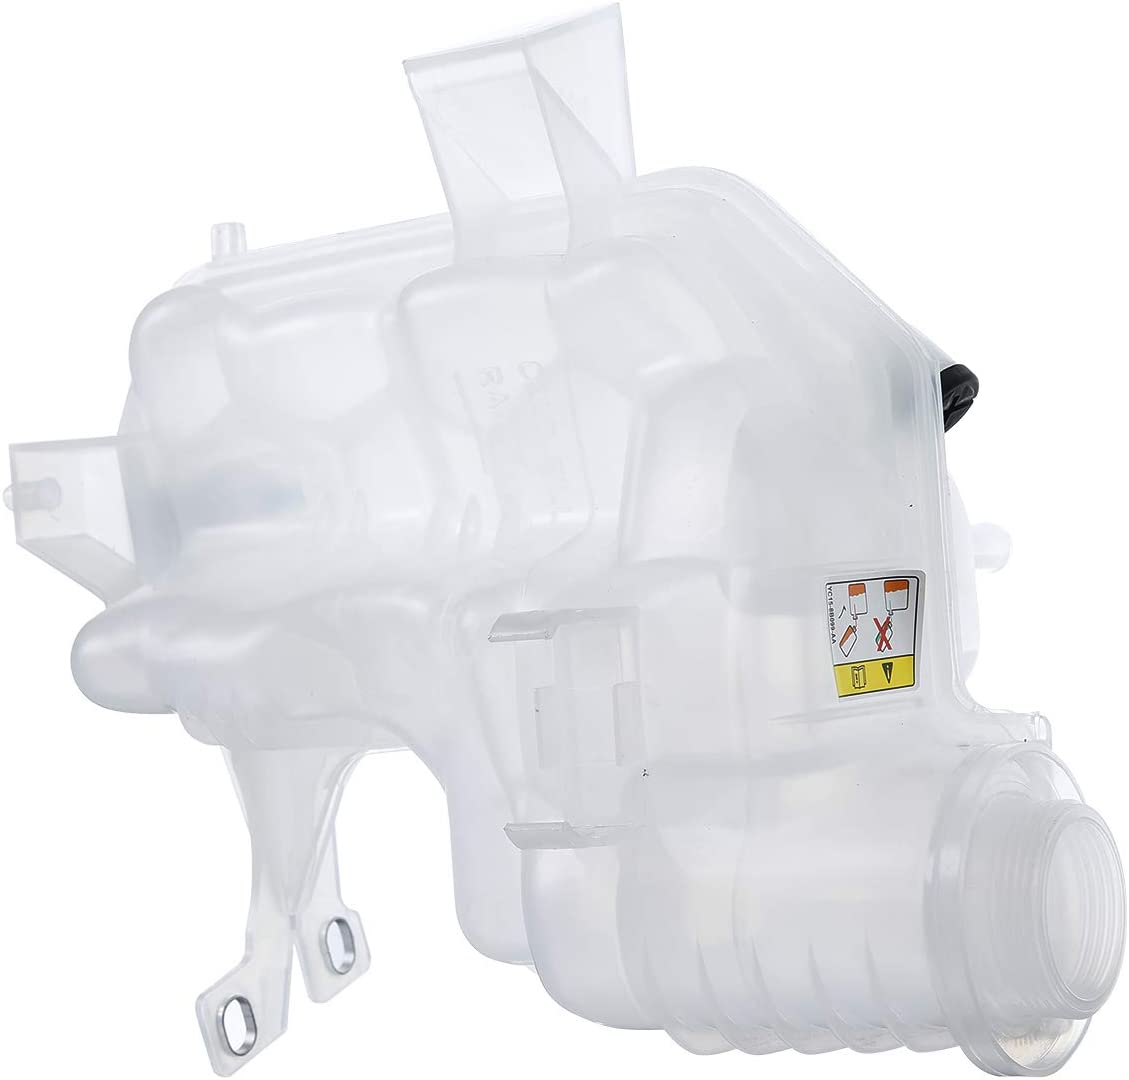 A-Premium Coolant Expansion Tank with Sensor Replacement for Land Rover LR3 2005-2009 LR4 2010-2016 Range Rover Sport 2006-2013